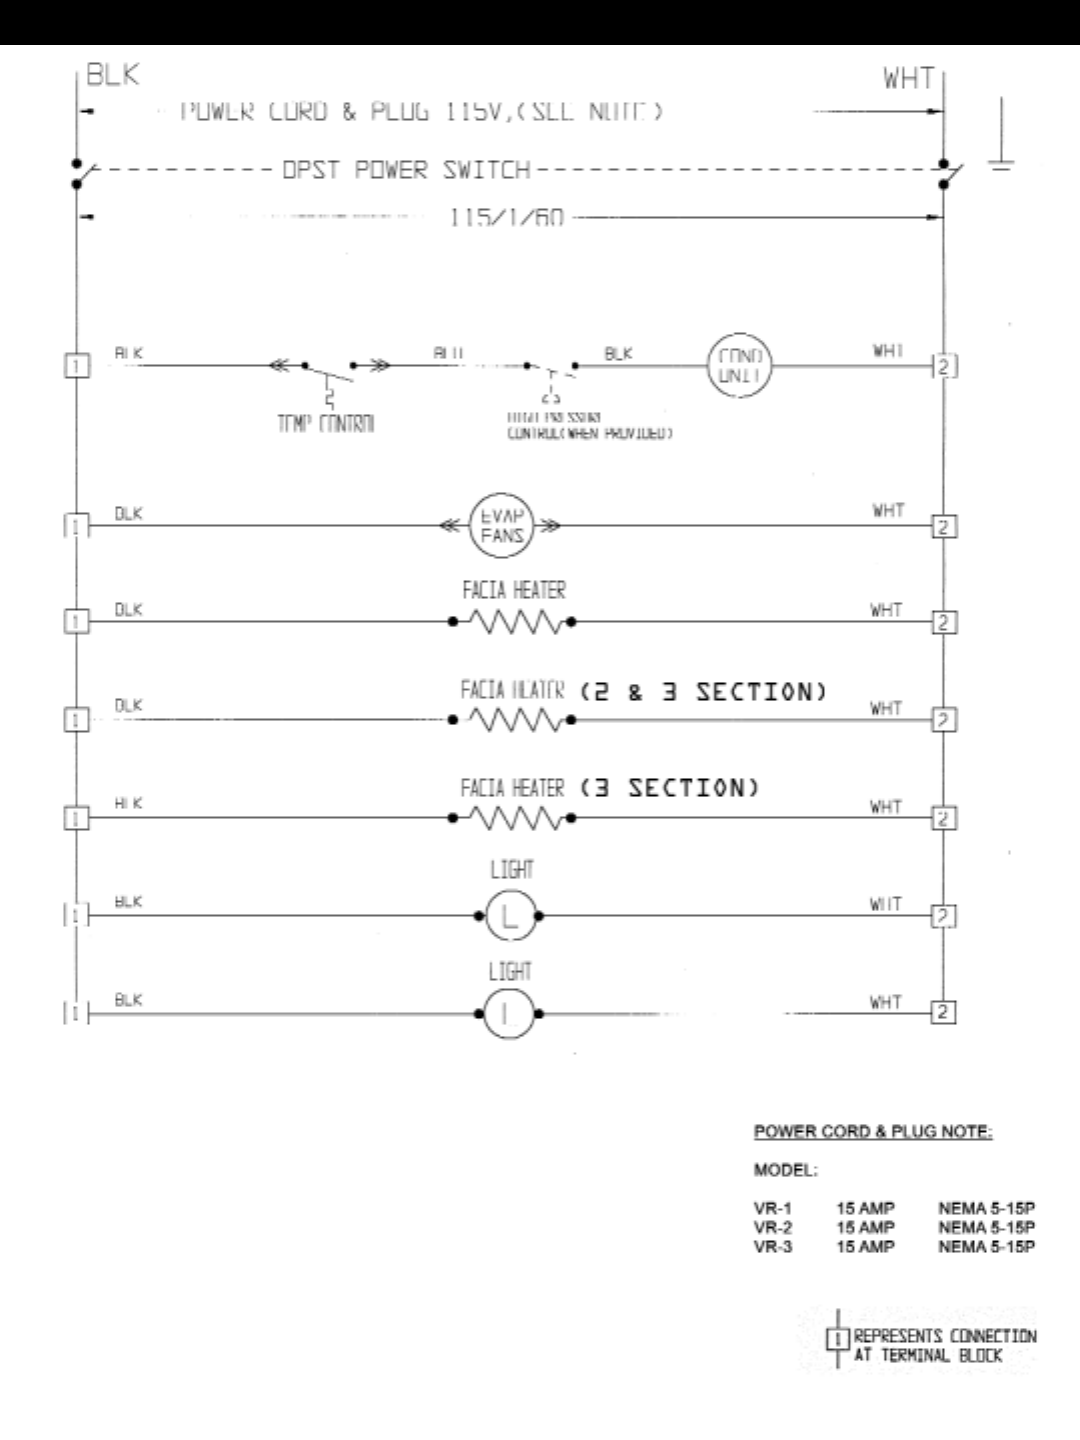 victory wire diagrams victory automotive wiring diagrams d6797b6b 07c1 a3e4 fd47 2be21208bf83 bgf